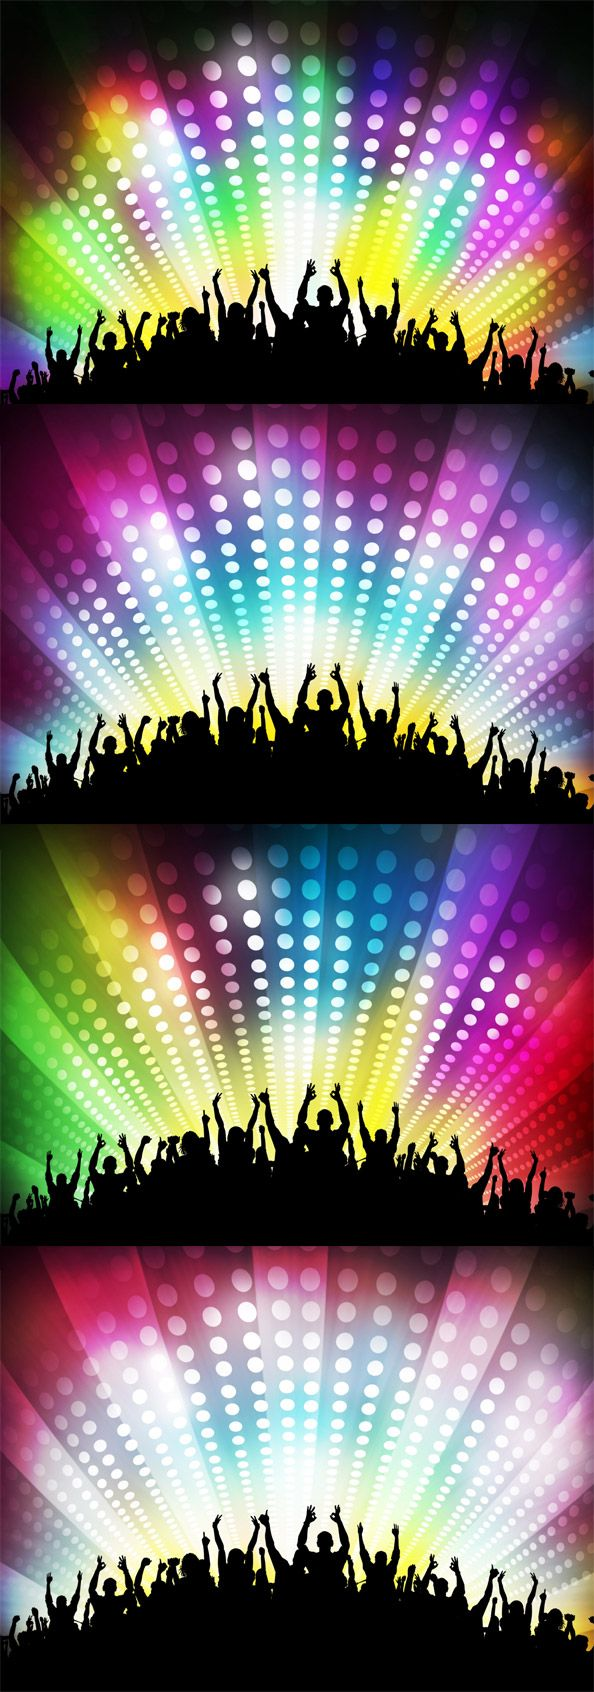 4 colorful party backgrounds presenting a crowd of happy people and shining disco effects. Great use for your cover, disco flyer, poster, collage, etc. Availabl